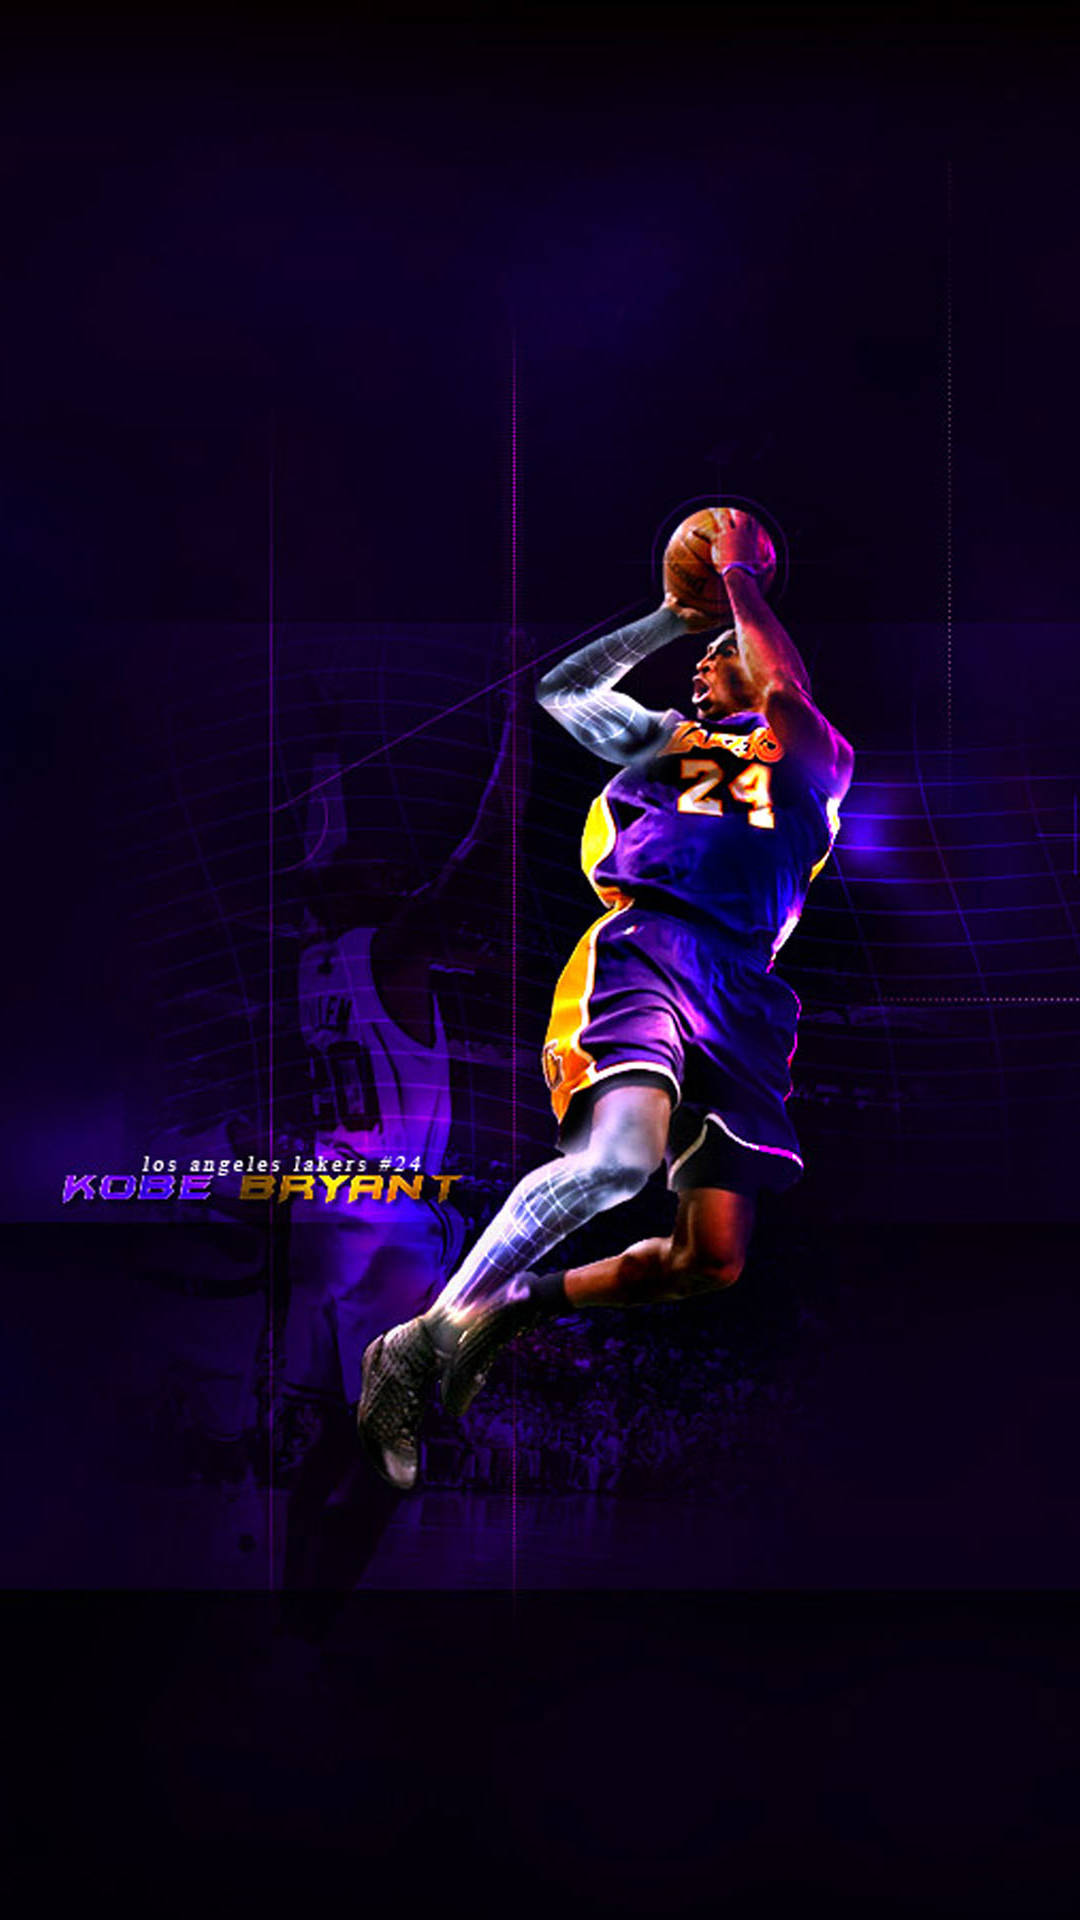 Kobe Bryant Logo Wallpapers High Resolution Is Cool Wallpapers